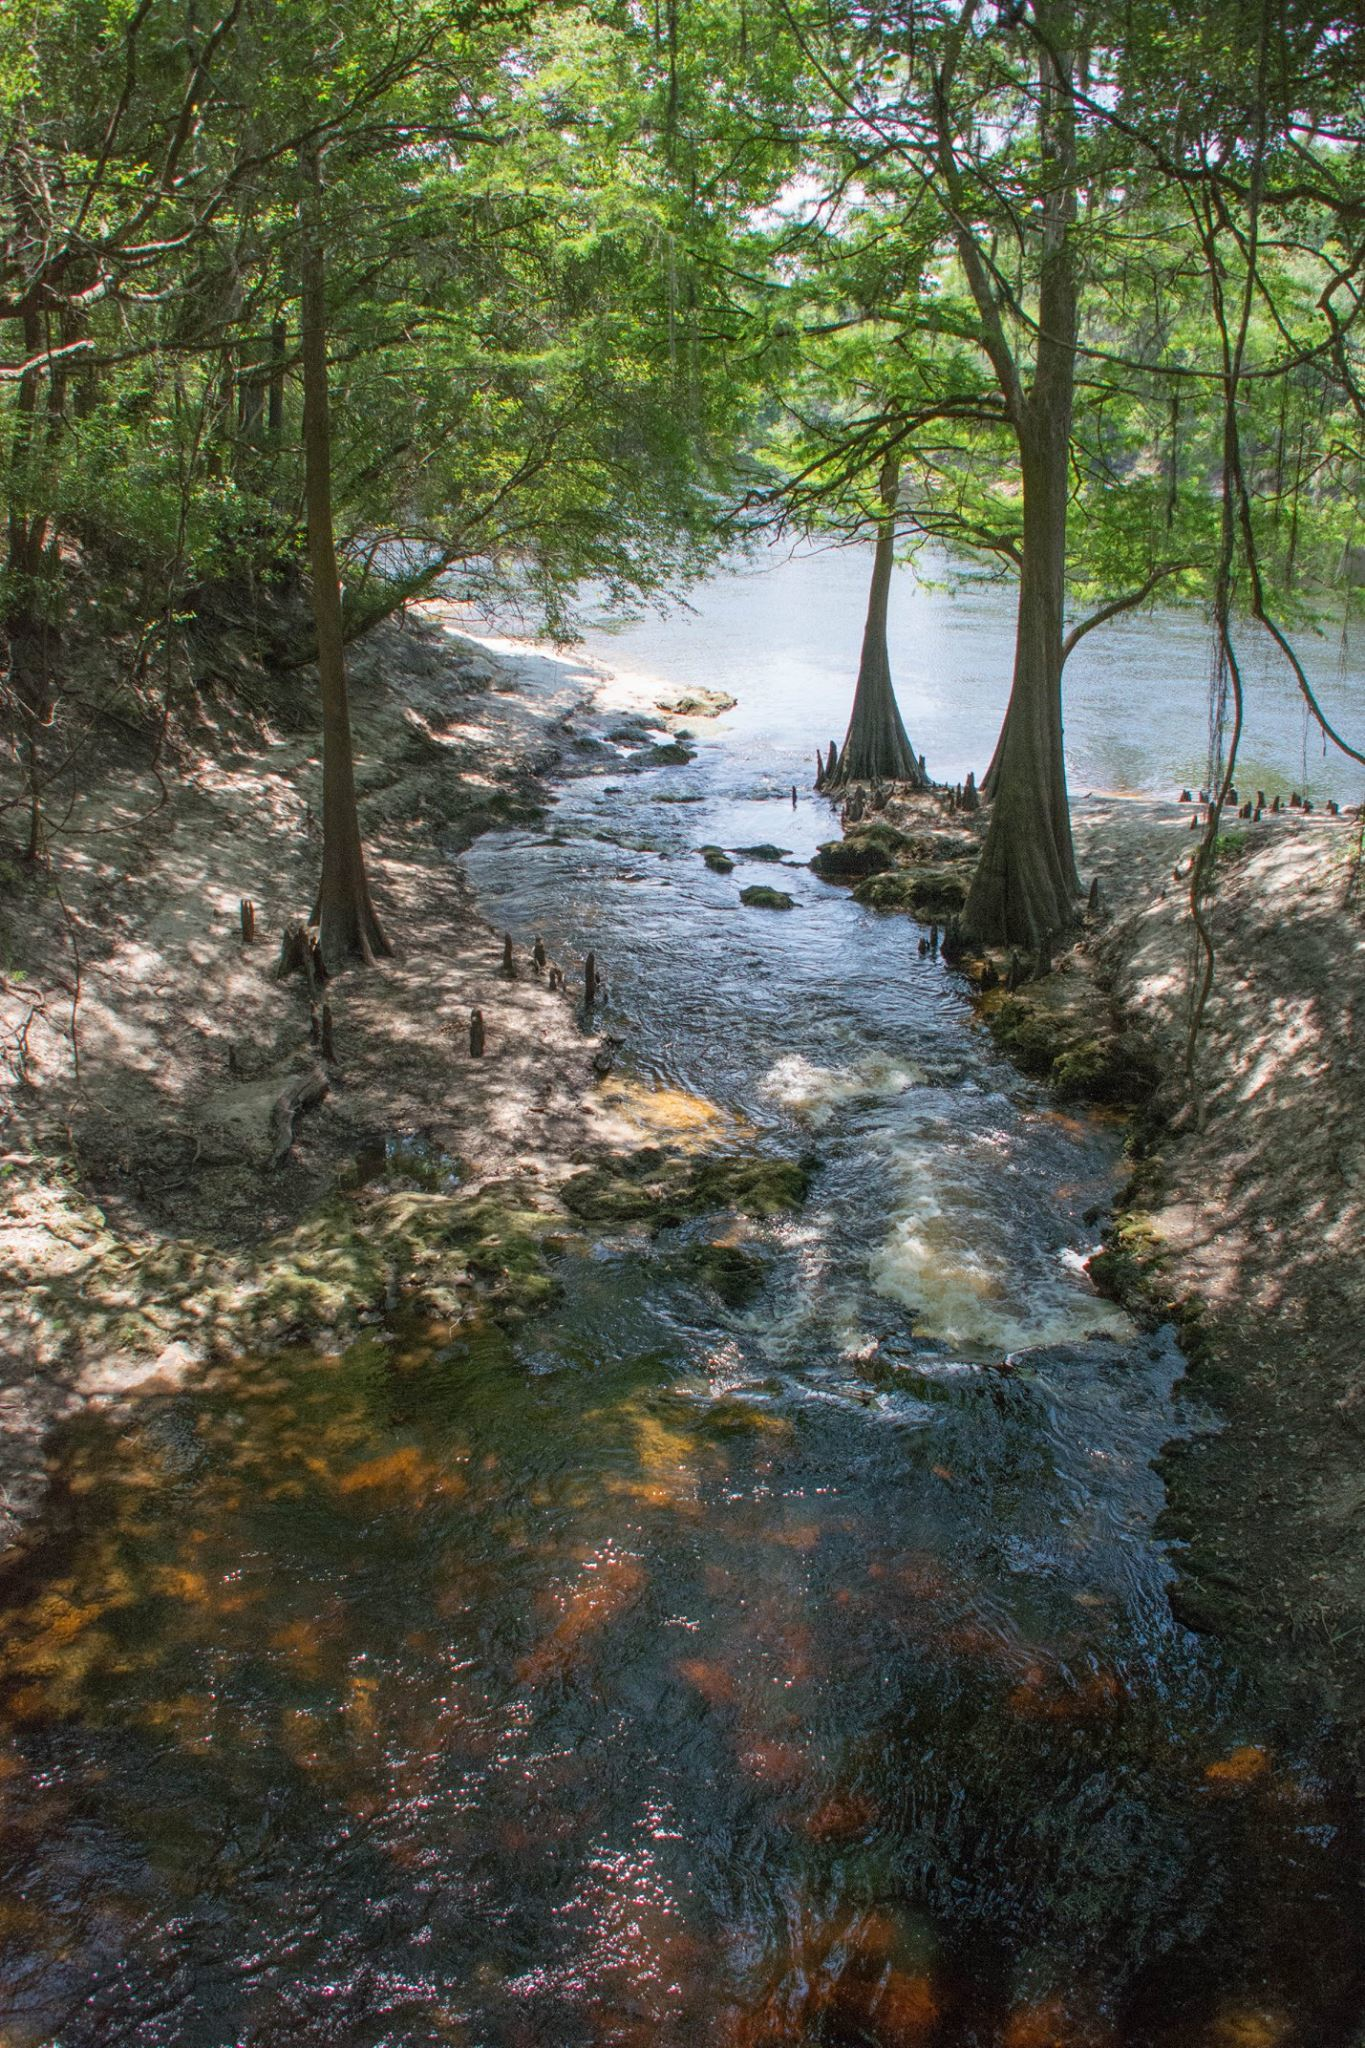 1365x2048 Lime Sink Run from the foot bridge, looking out over the Suwannee River, in Lime Sink Run, by Lori McCraney, 15 May 2016